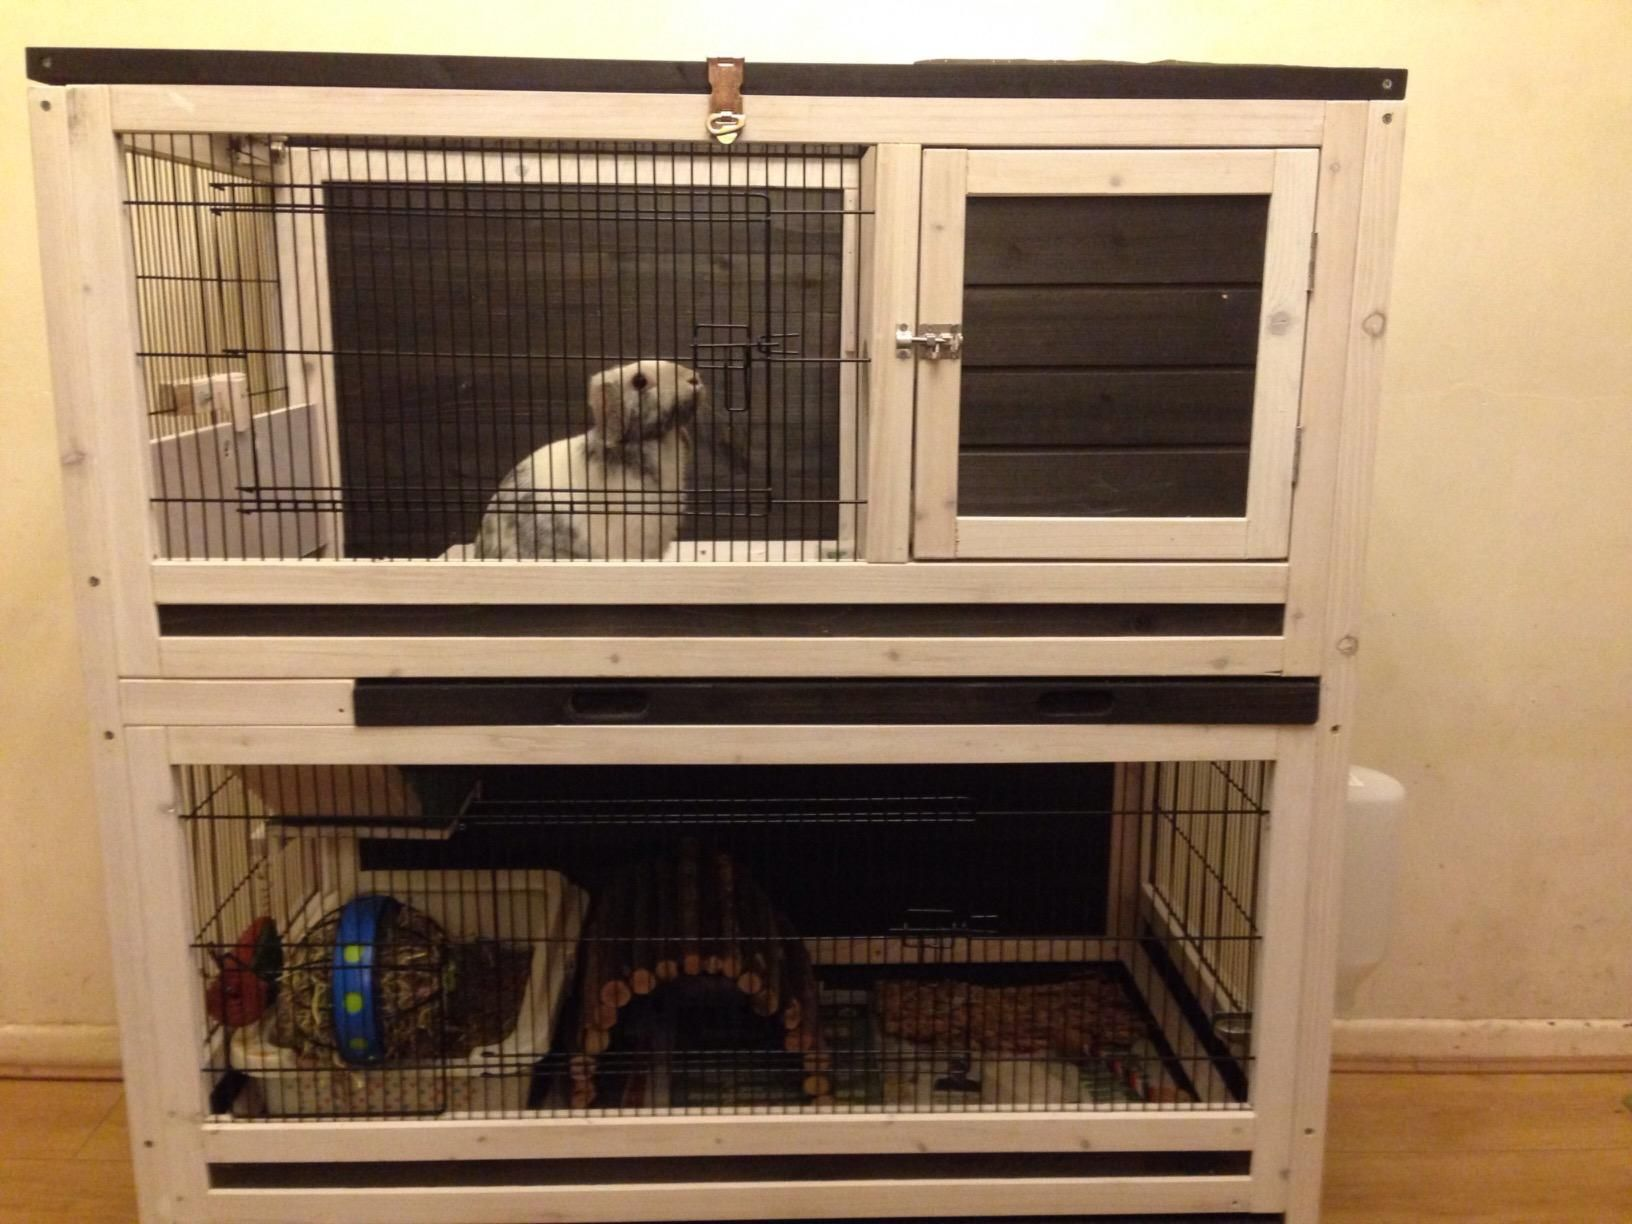 Small Pet Cage Indoor Lounge 2 Storey Wooden Rabbits or